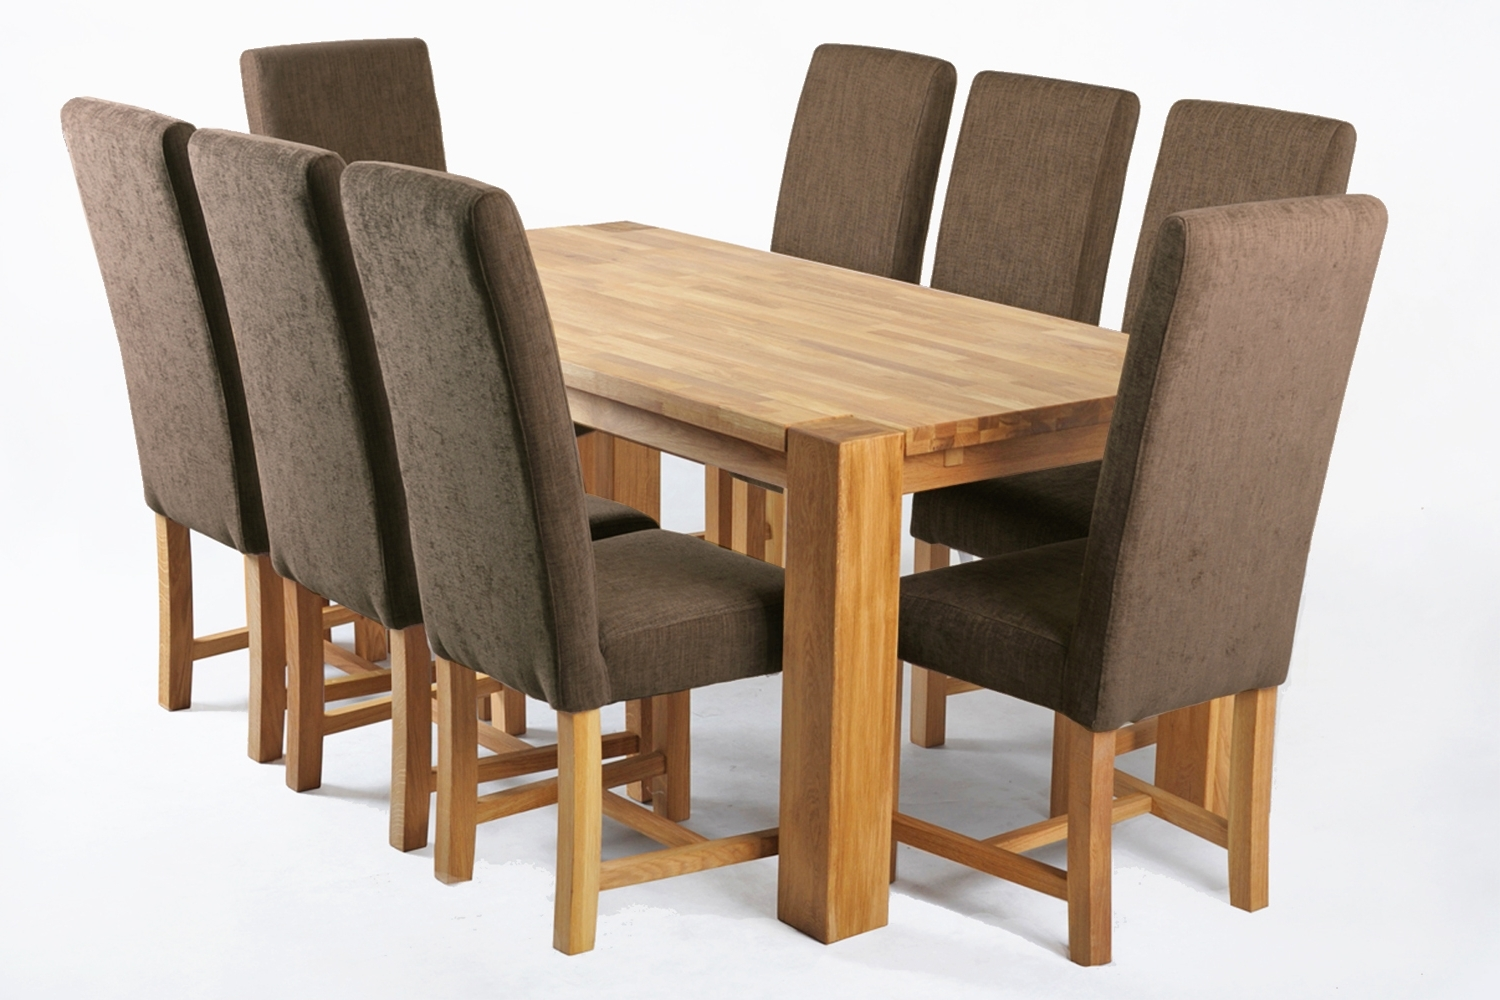 Oak Fabric Dining Chairs With 2018 Kensington Fabric Dining Chair With Massive Oak Legs Nut White (View 21 of 25)